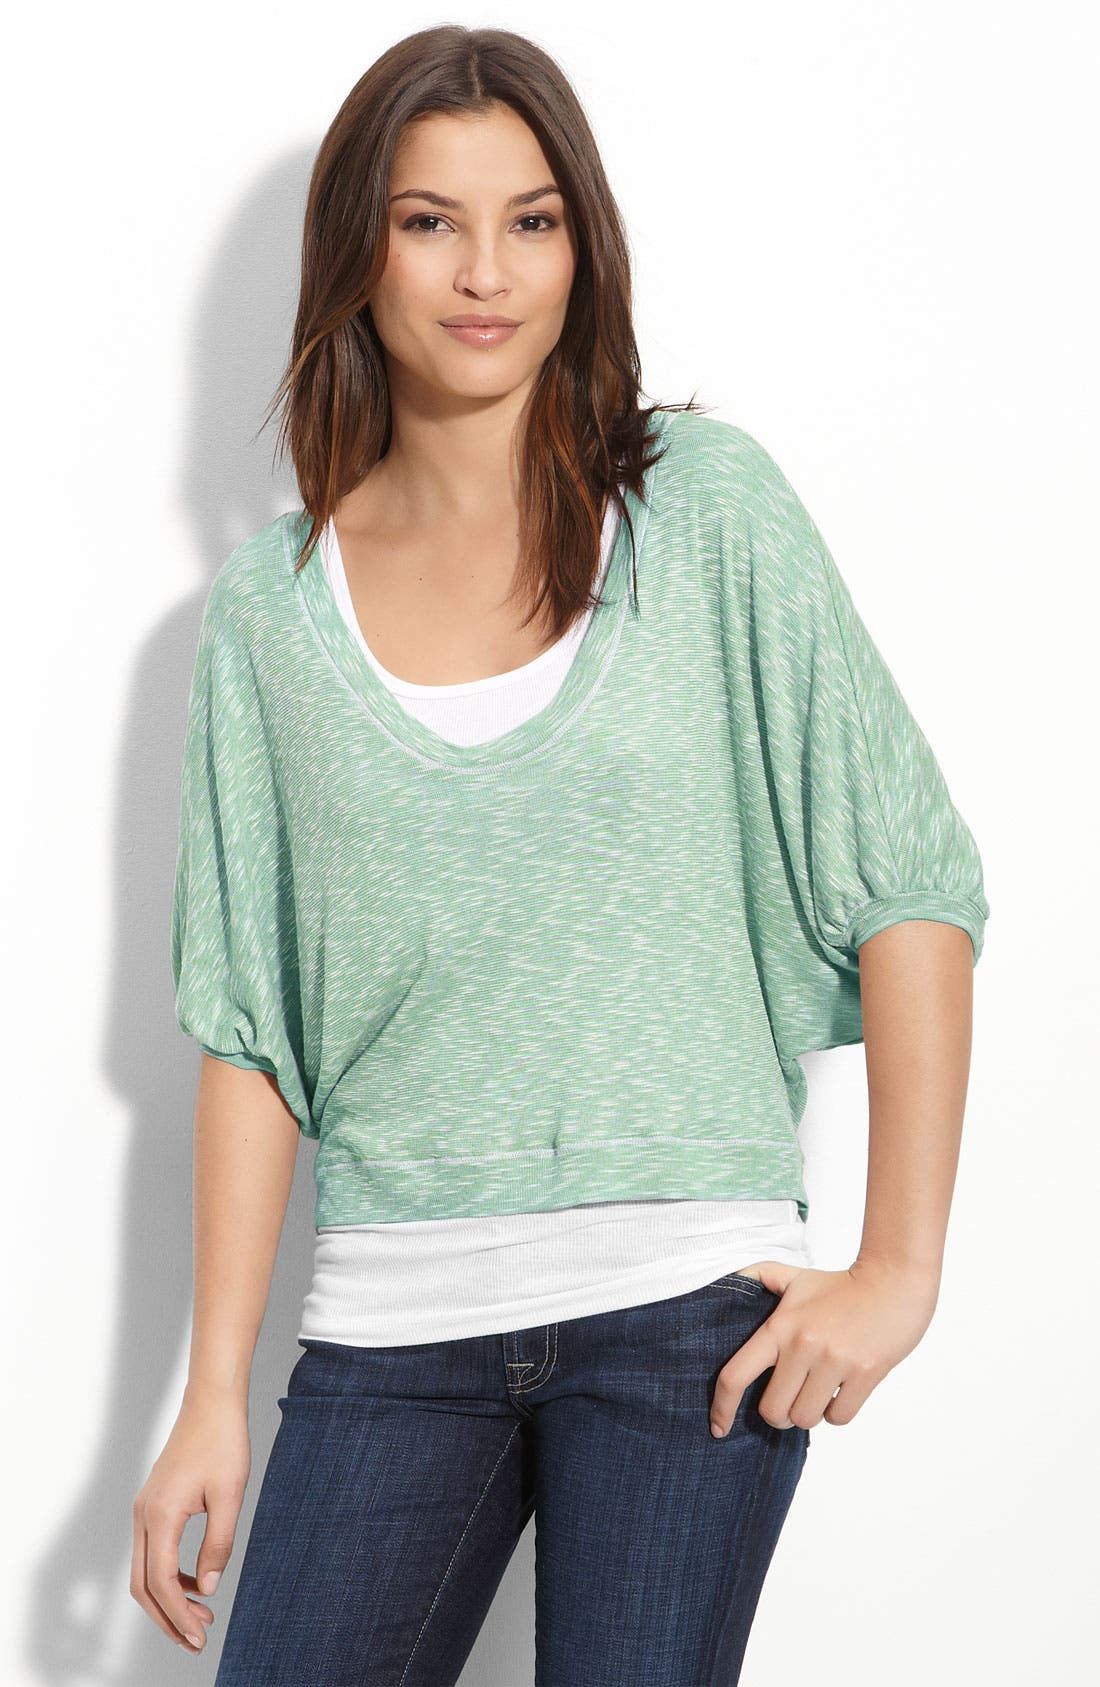 Alternate Image 1 Selected - Splendid Slub Knit Top